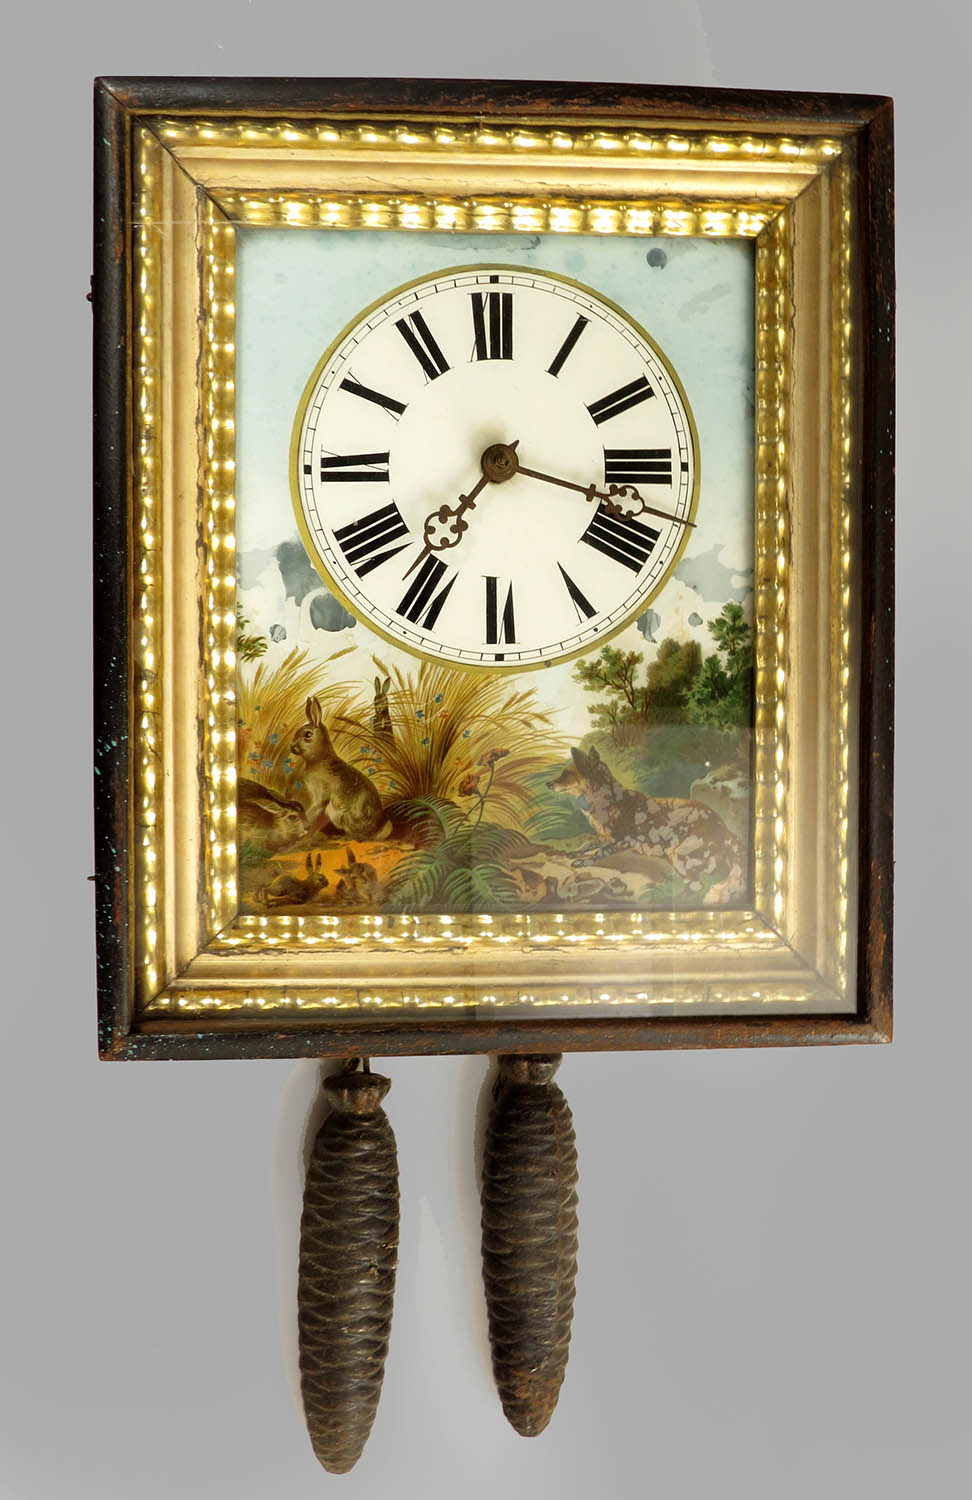 6070-1500 french picture frame clock.jpg